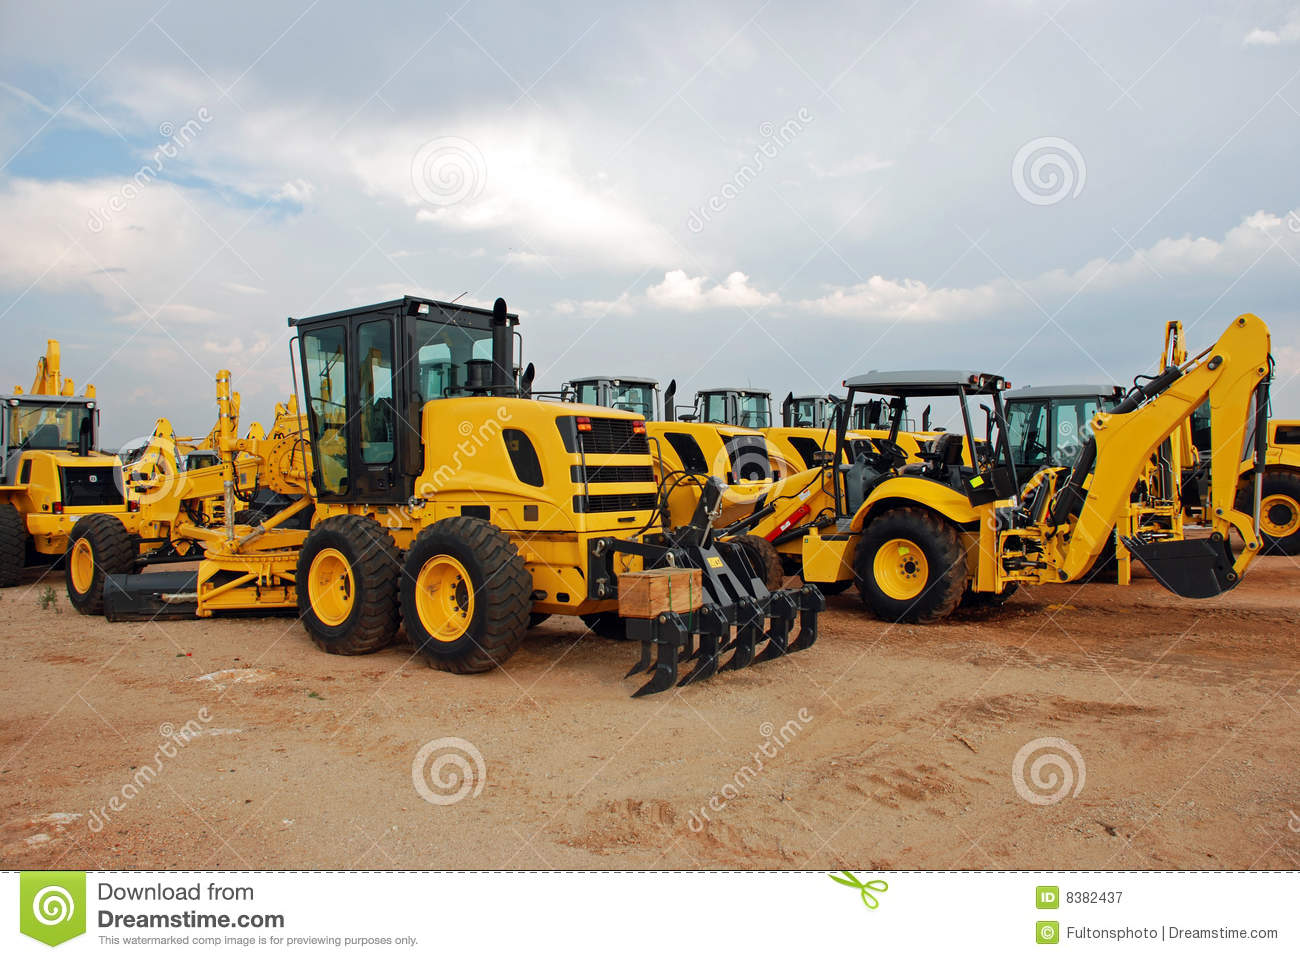 Grader and Excavator Construction Equipment Yard